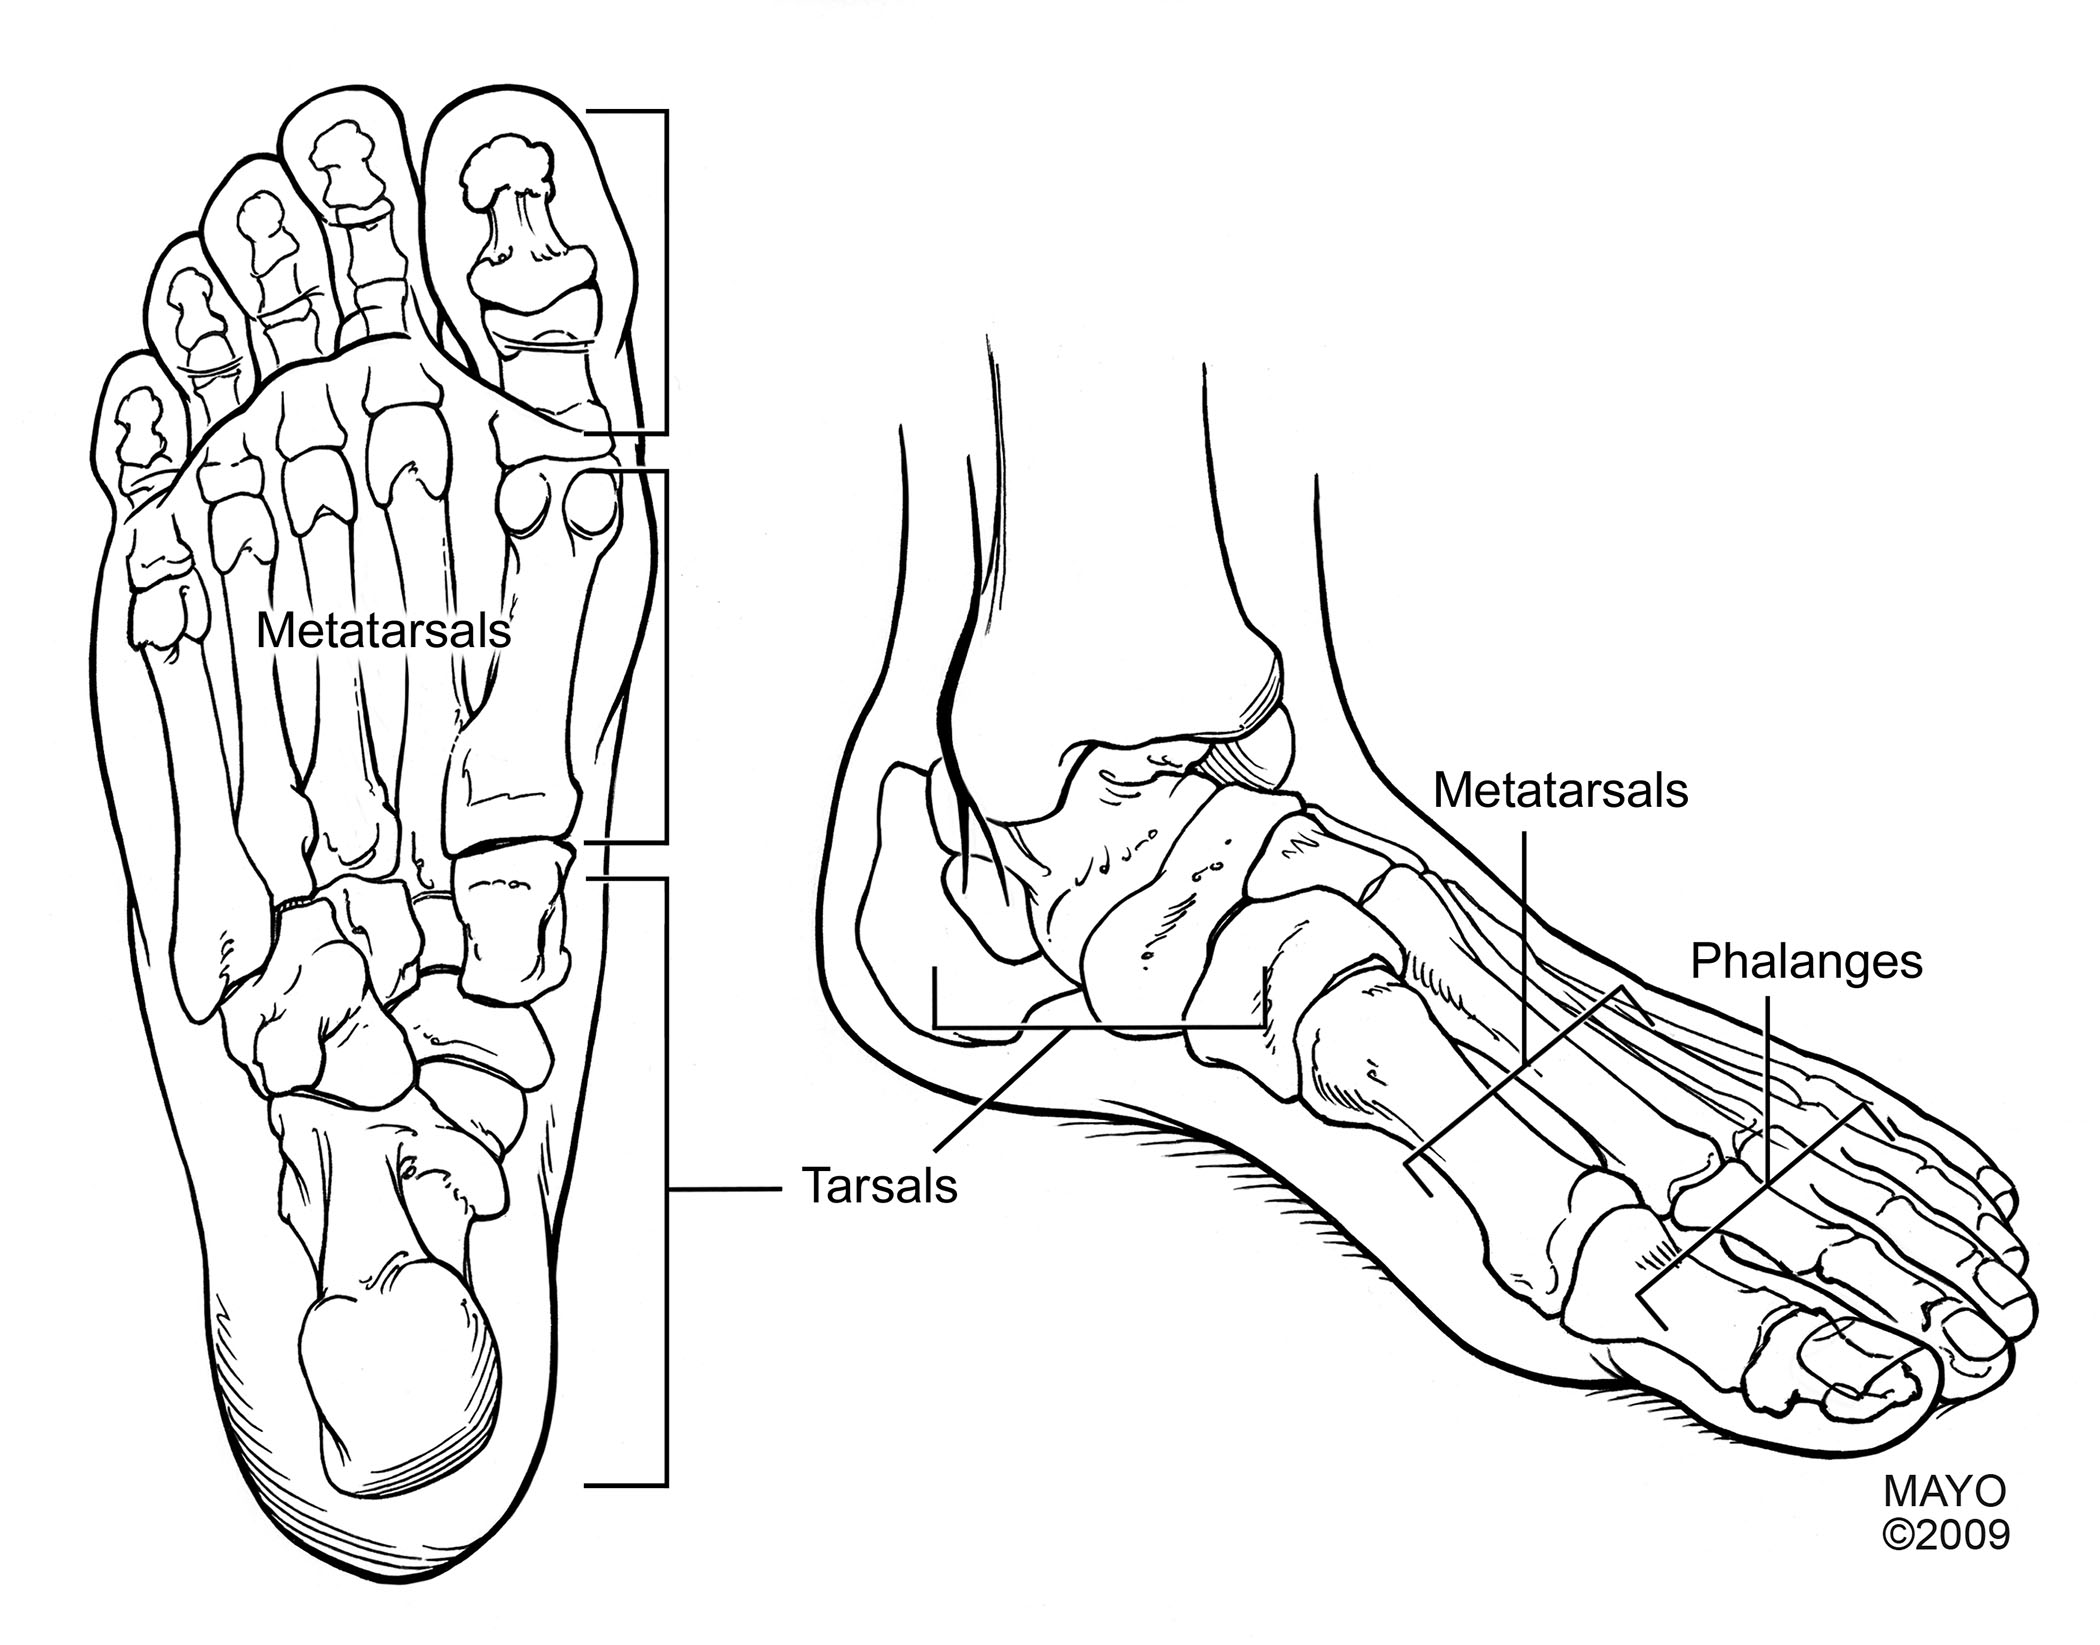 Pediatric Sports-Related Injuries of the Lower Extremity